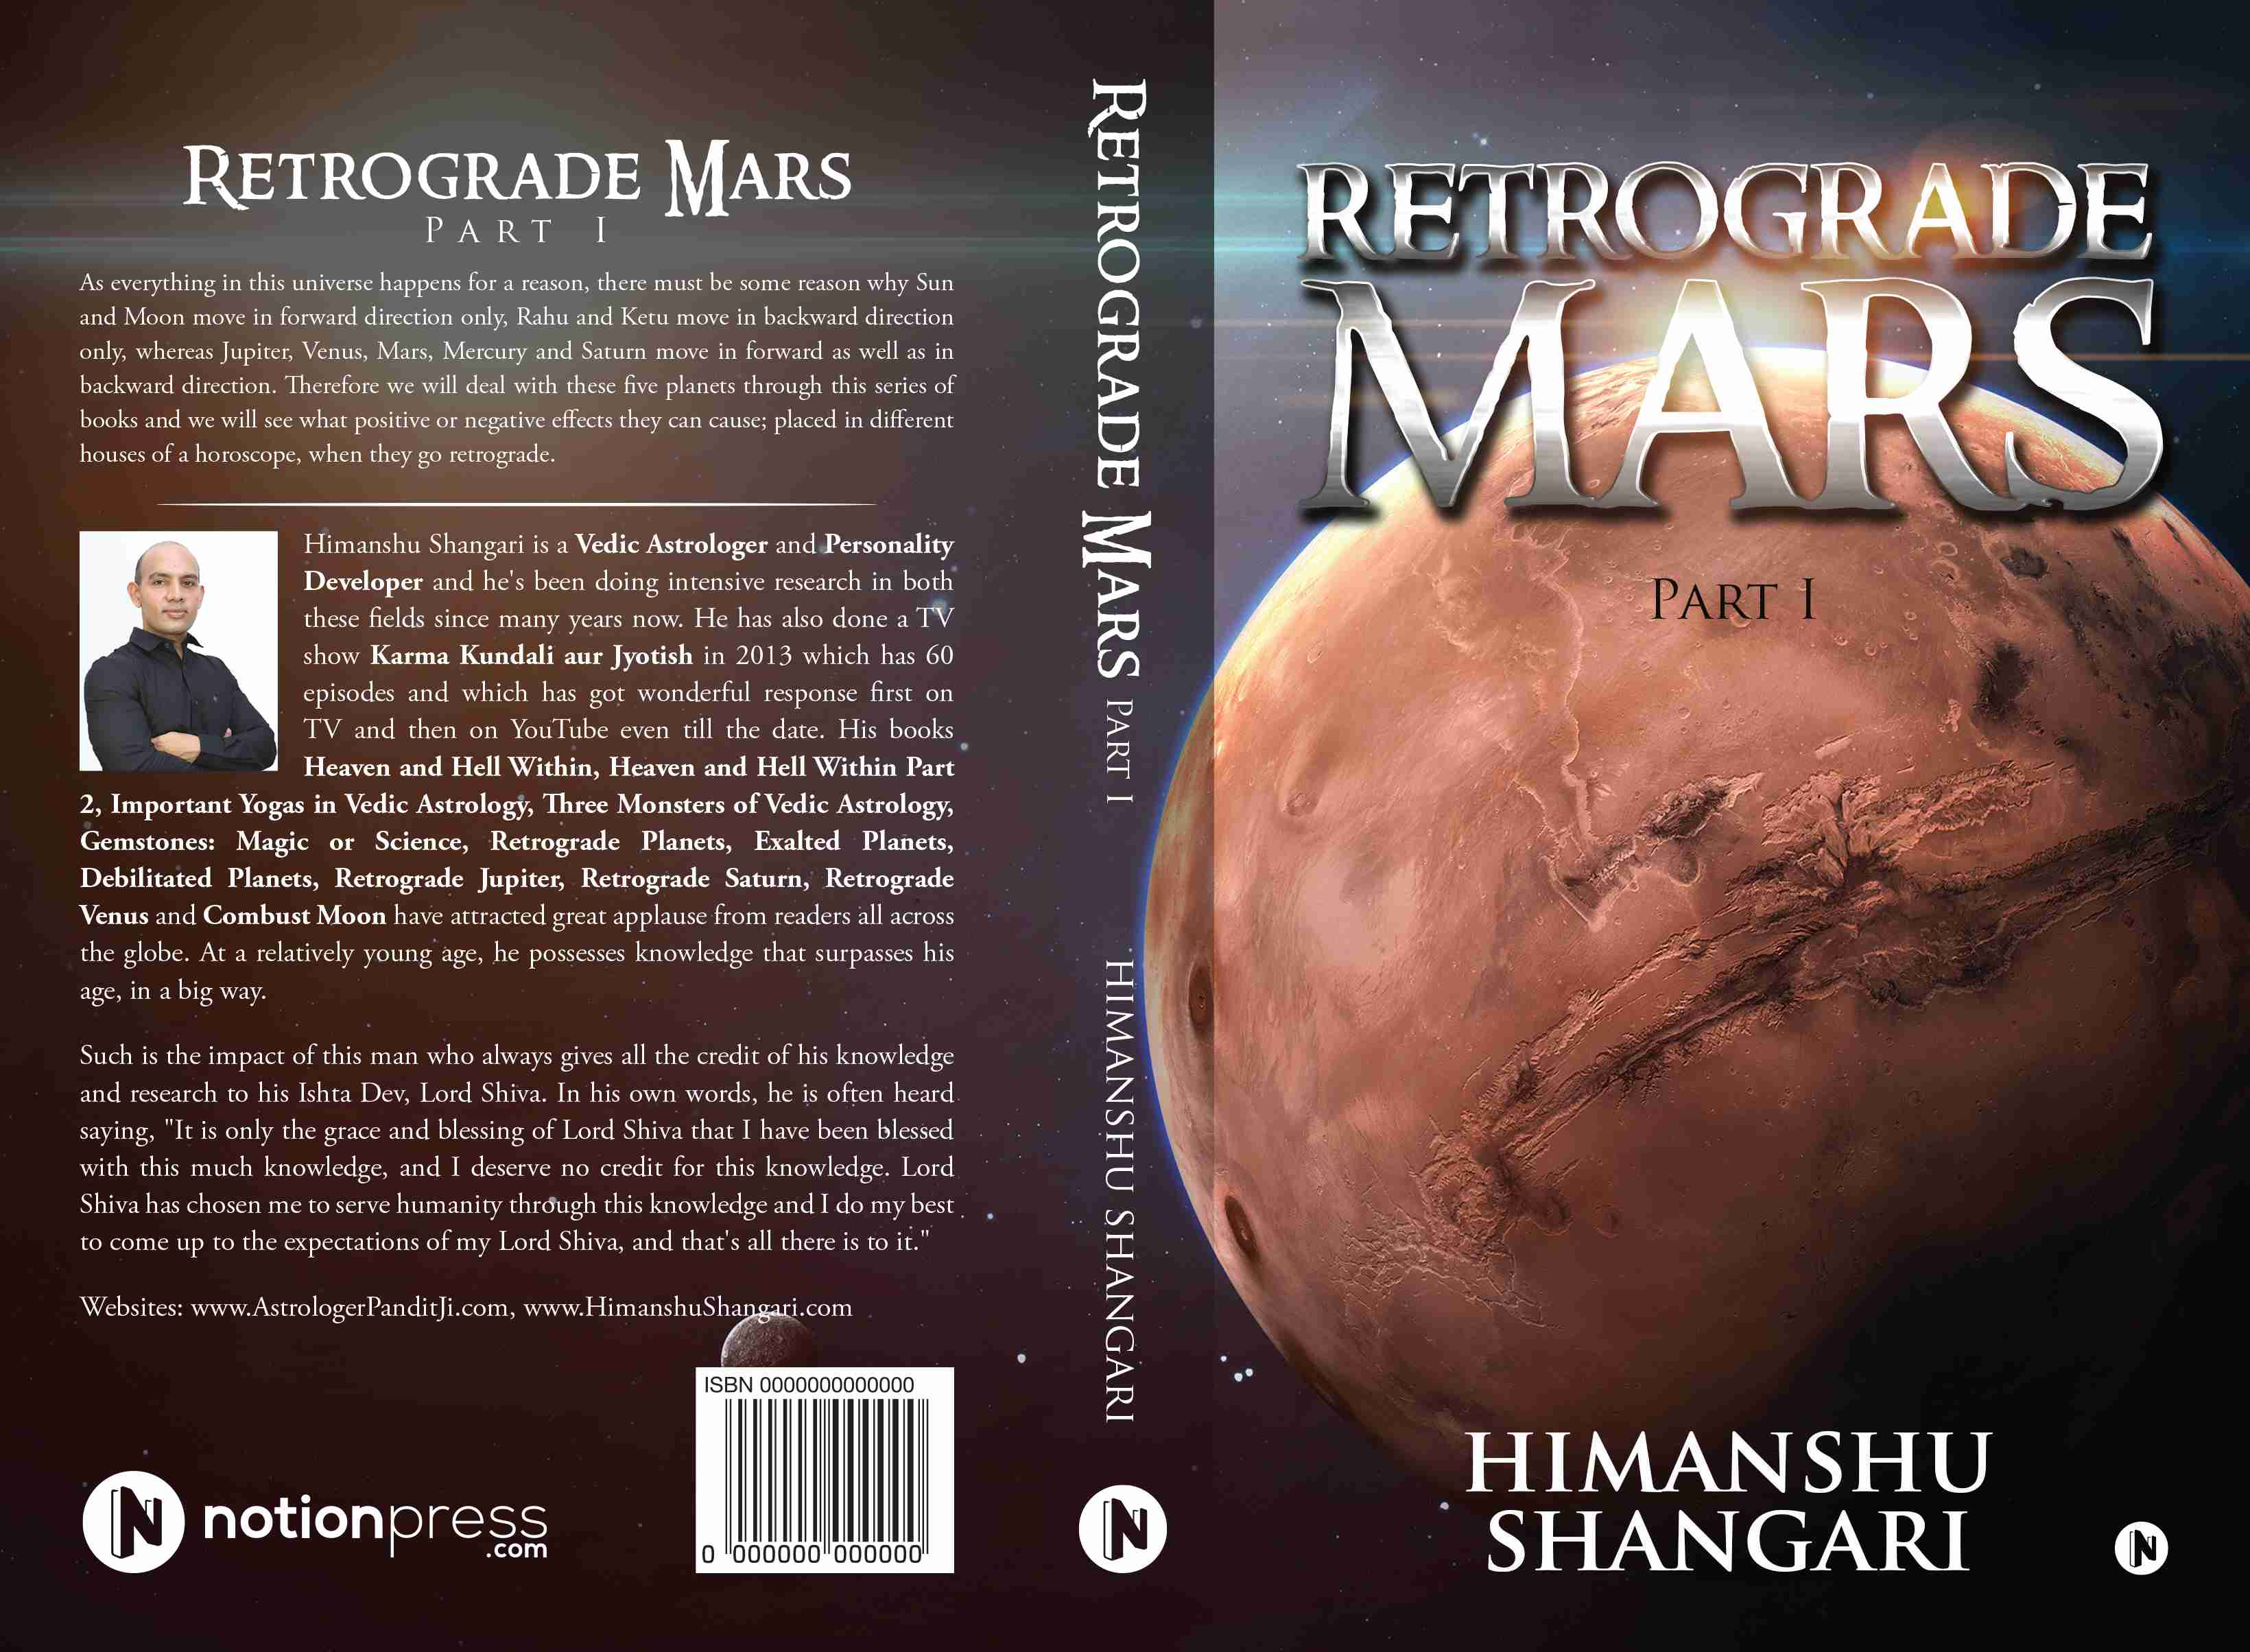 Retrograde Mars Part 1